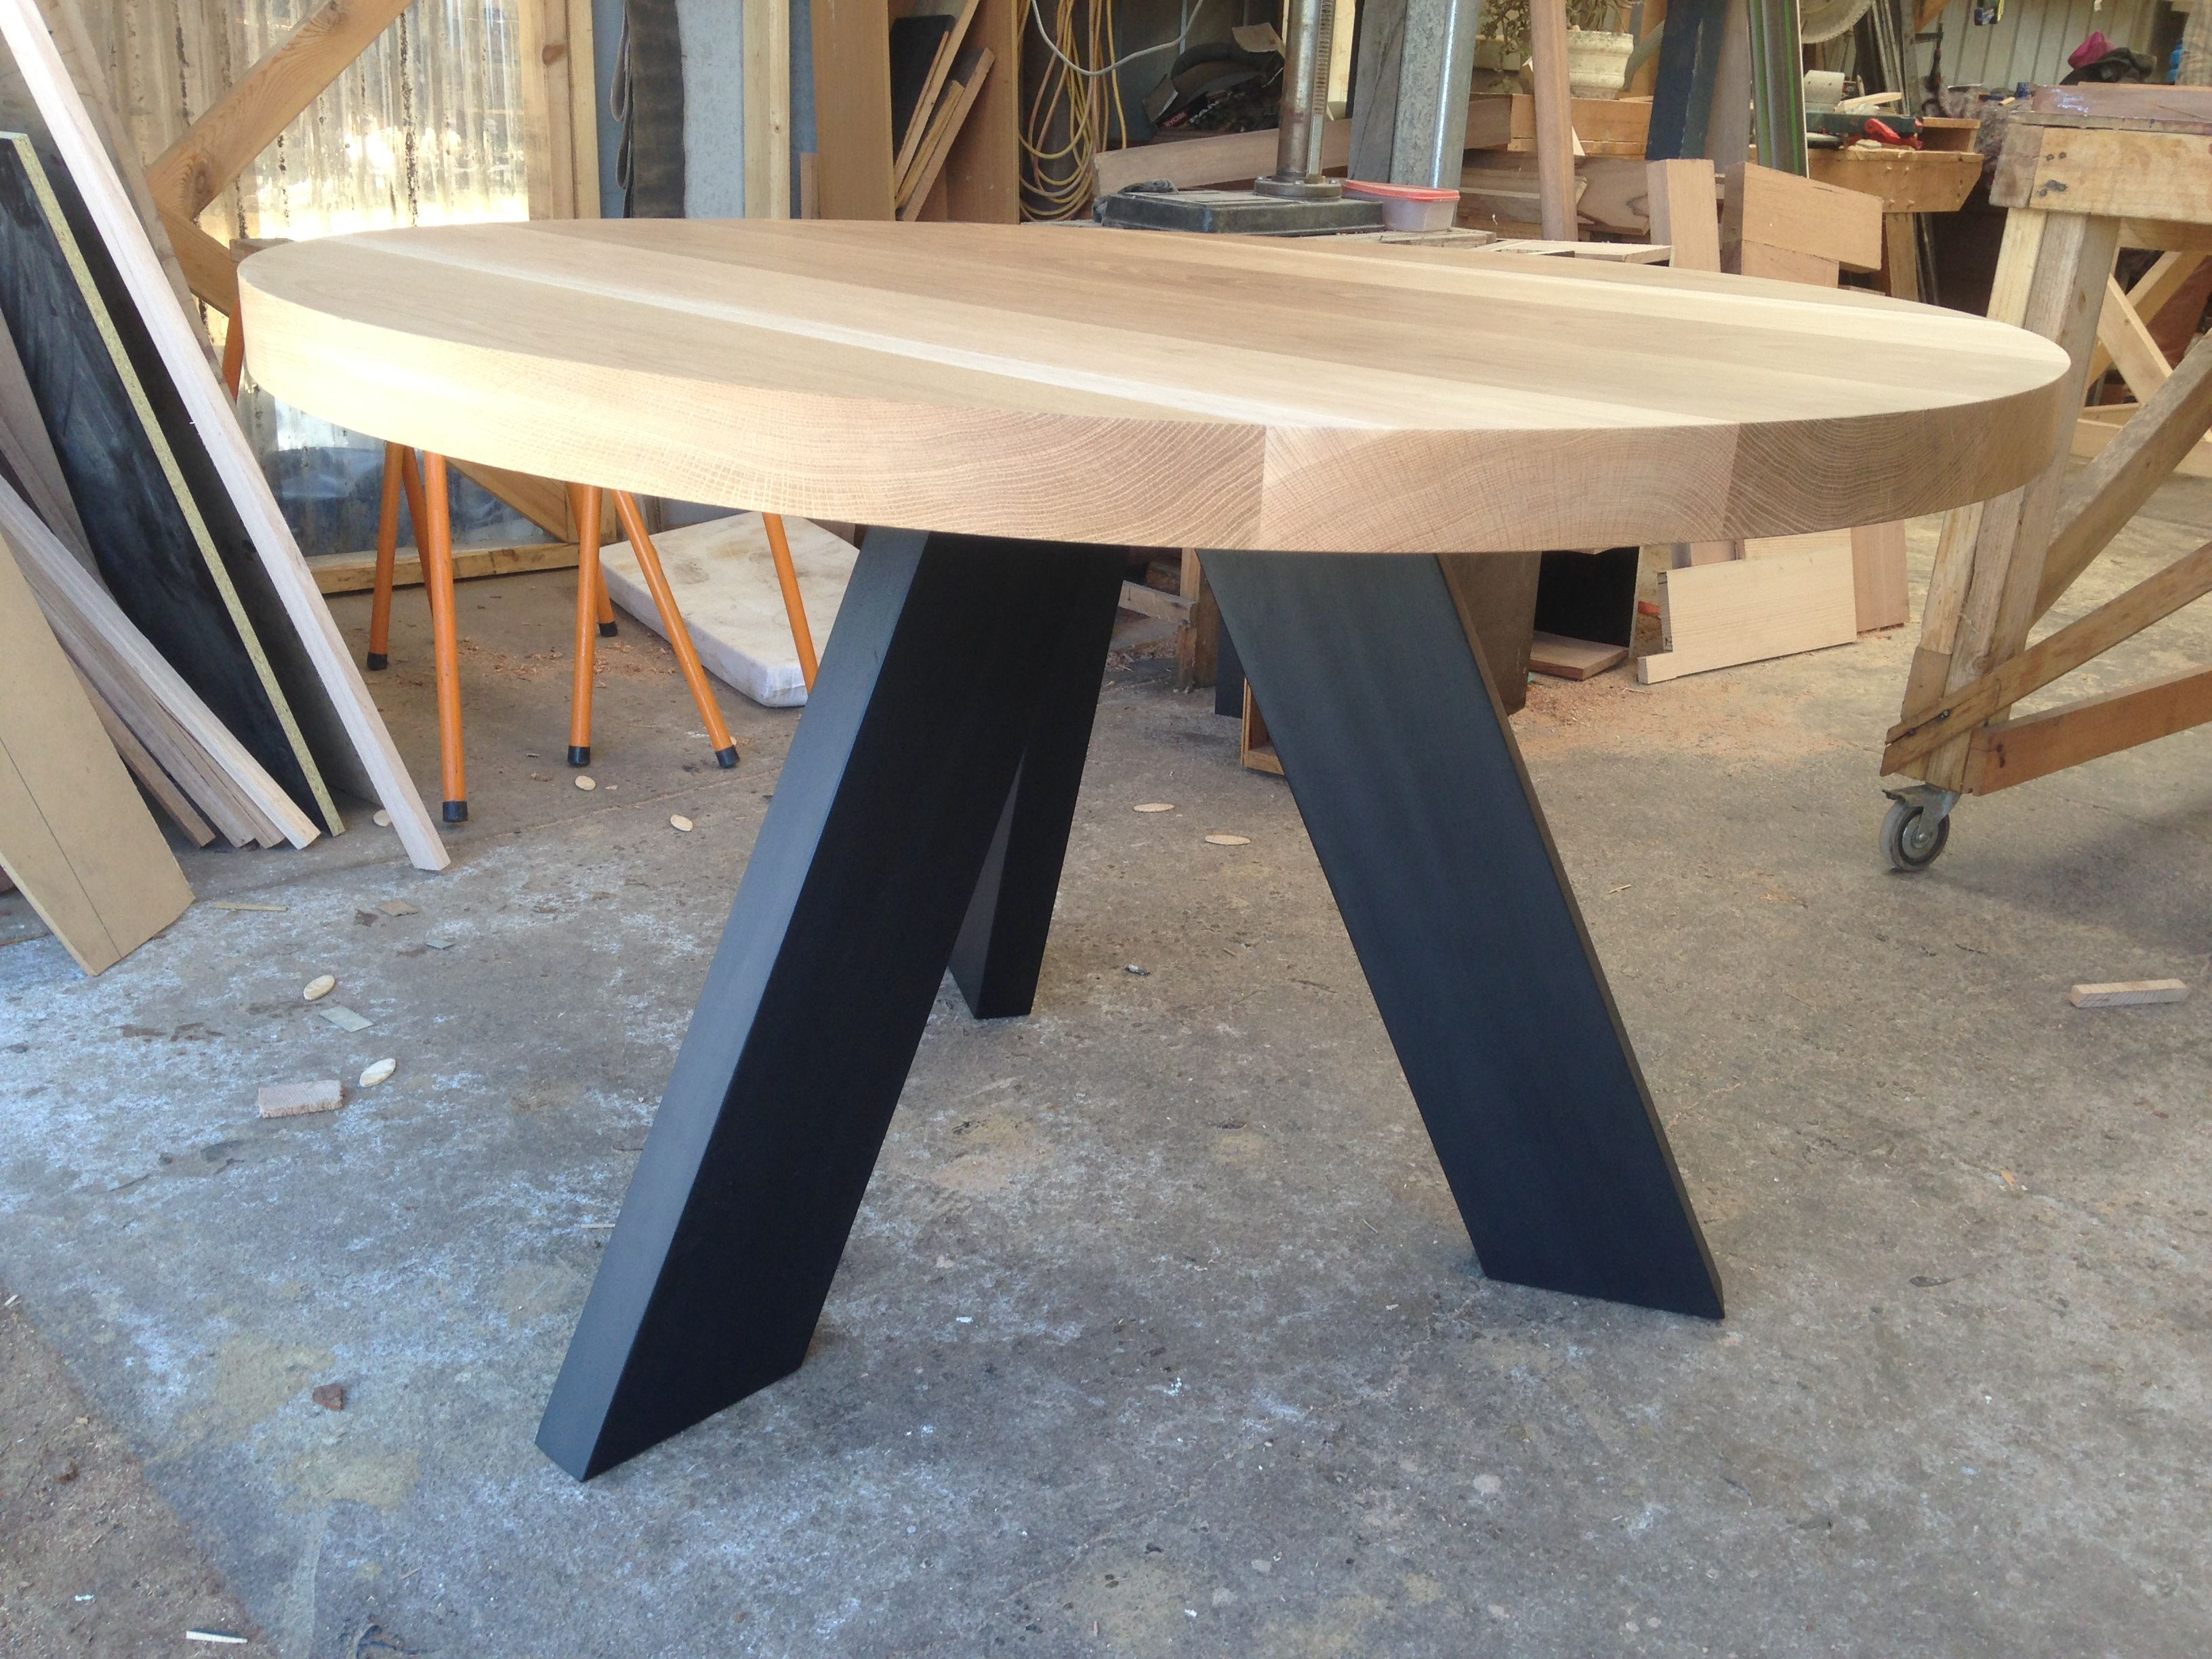 Solid American Oak Round Dining Table With Matte Black Angled Legs  #bomboracustomfurniture